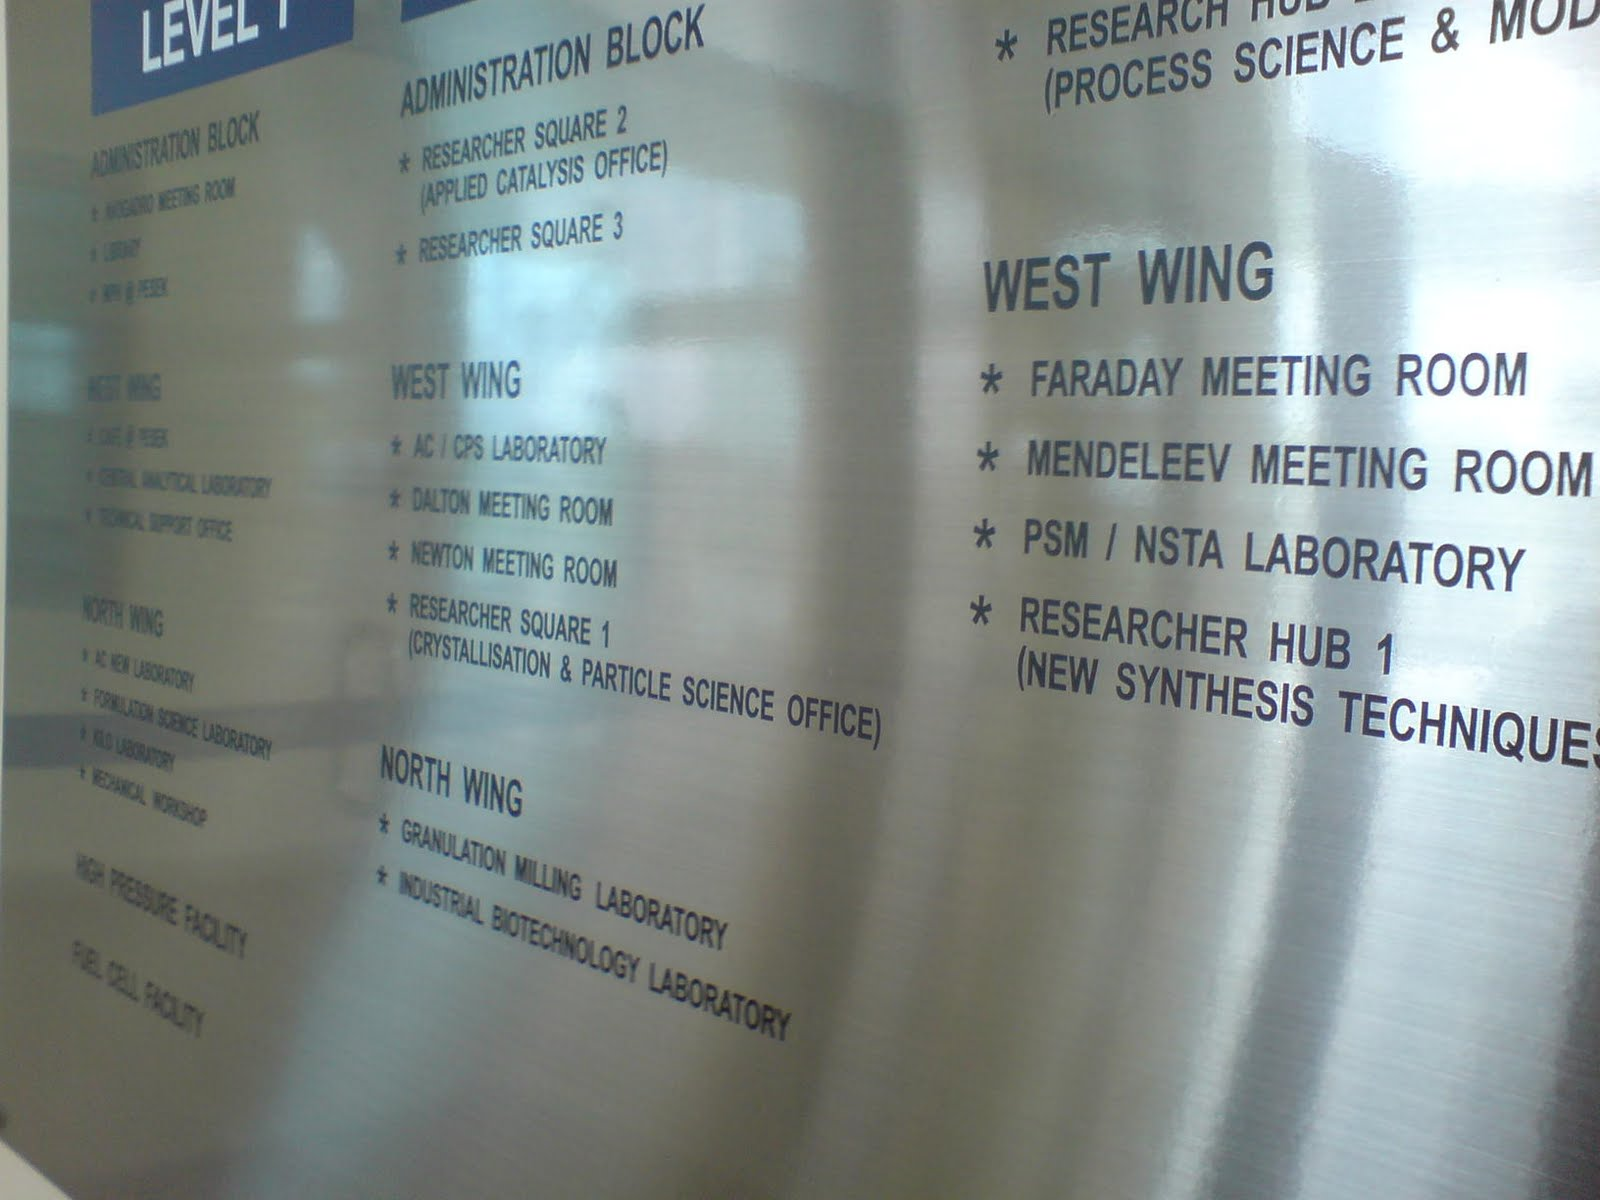 Funny Meeting Names Name of The Meeting Rooms